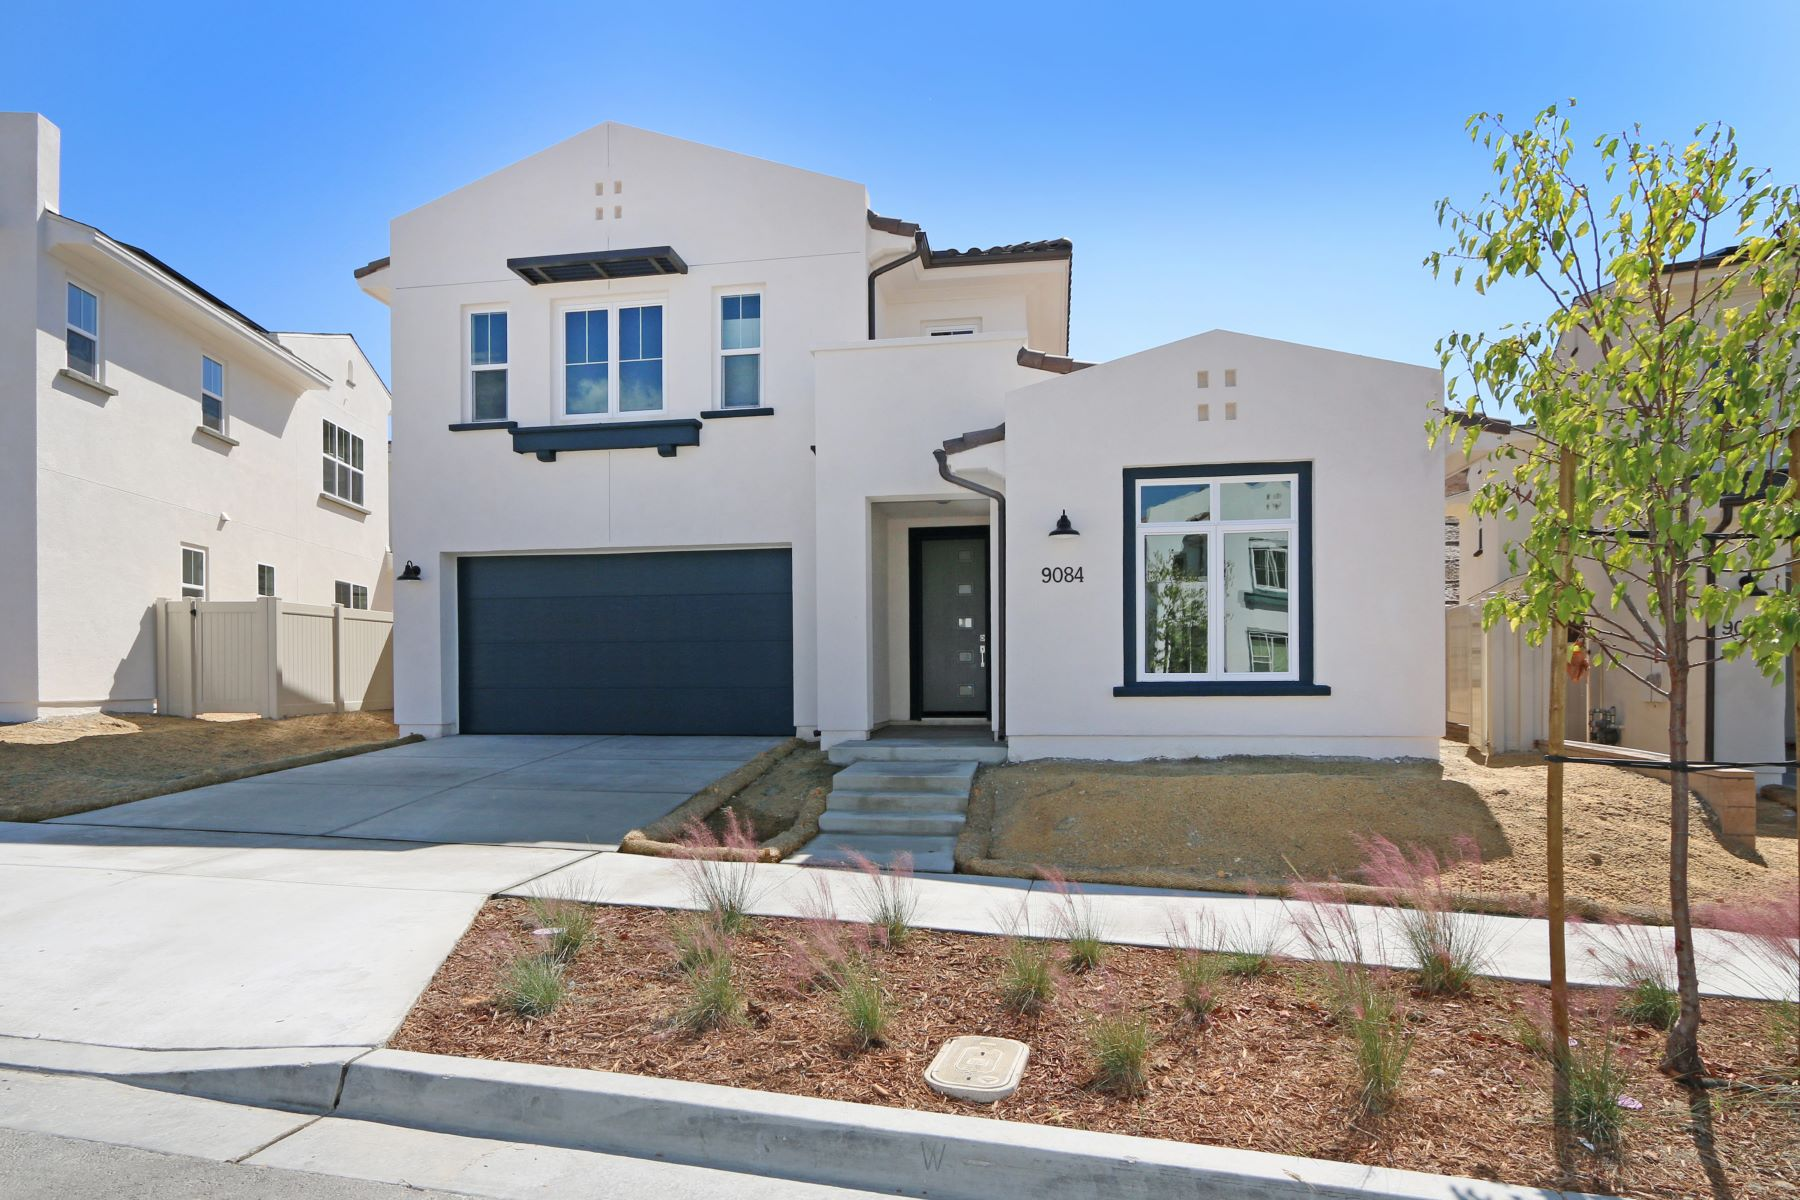 Single Family Homes for Sale at Lake Ridge 9084 West Bluff Place Lot 214 Santee, California 92071 United States